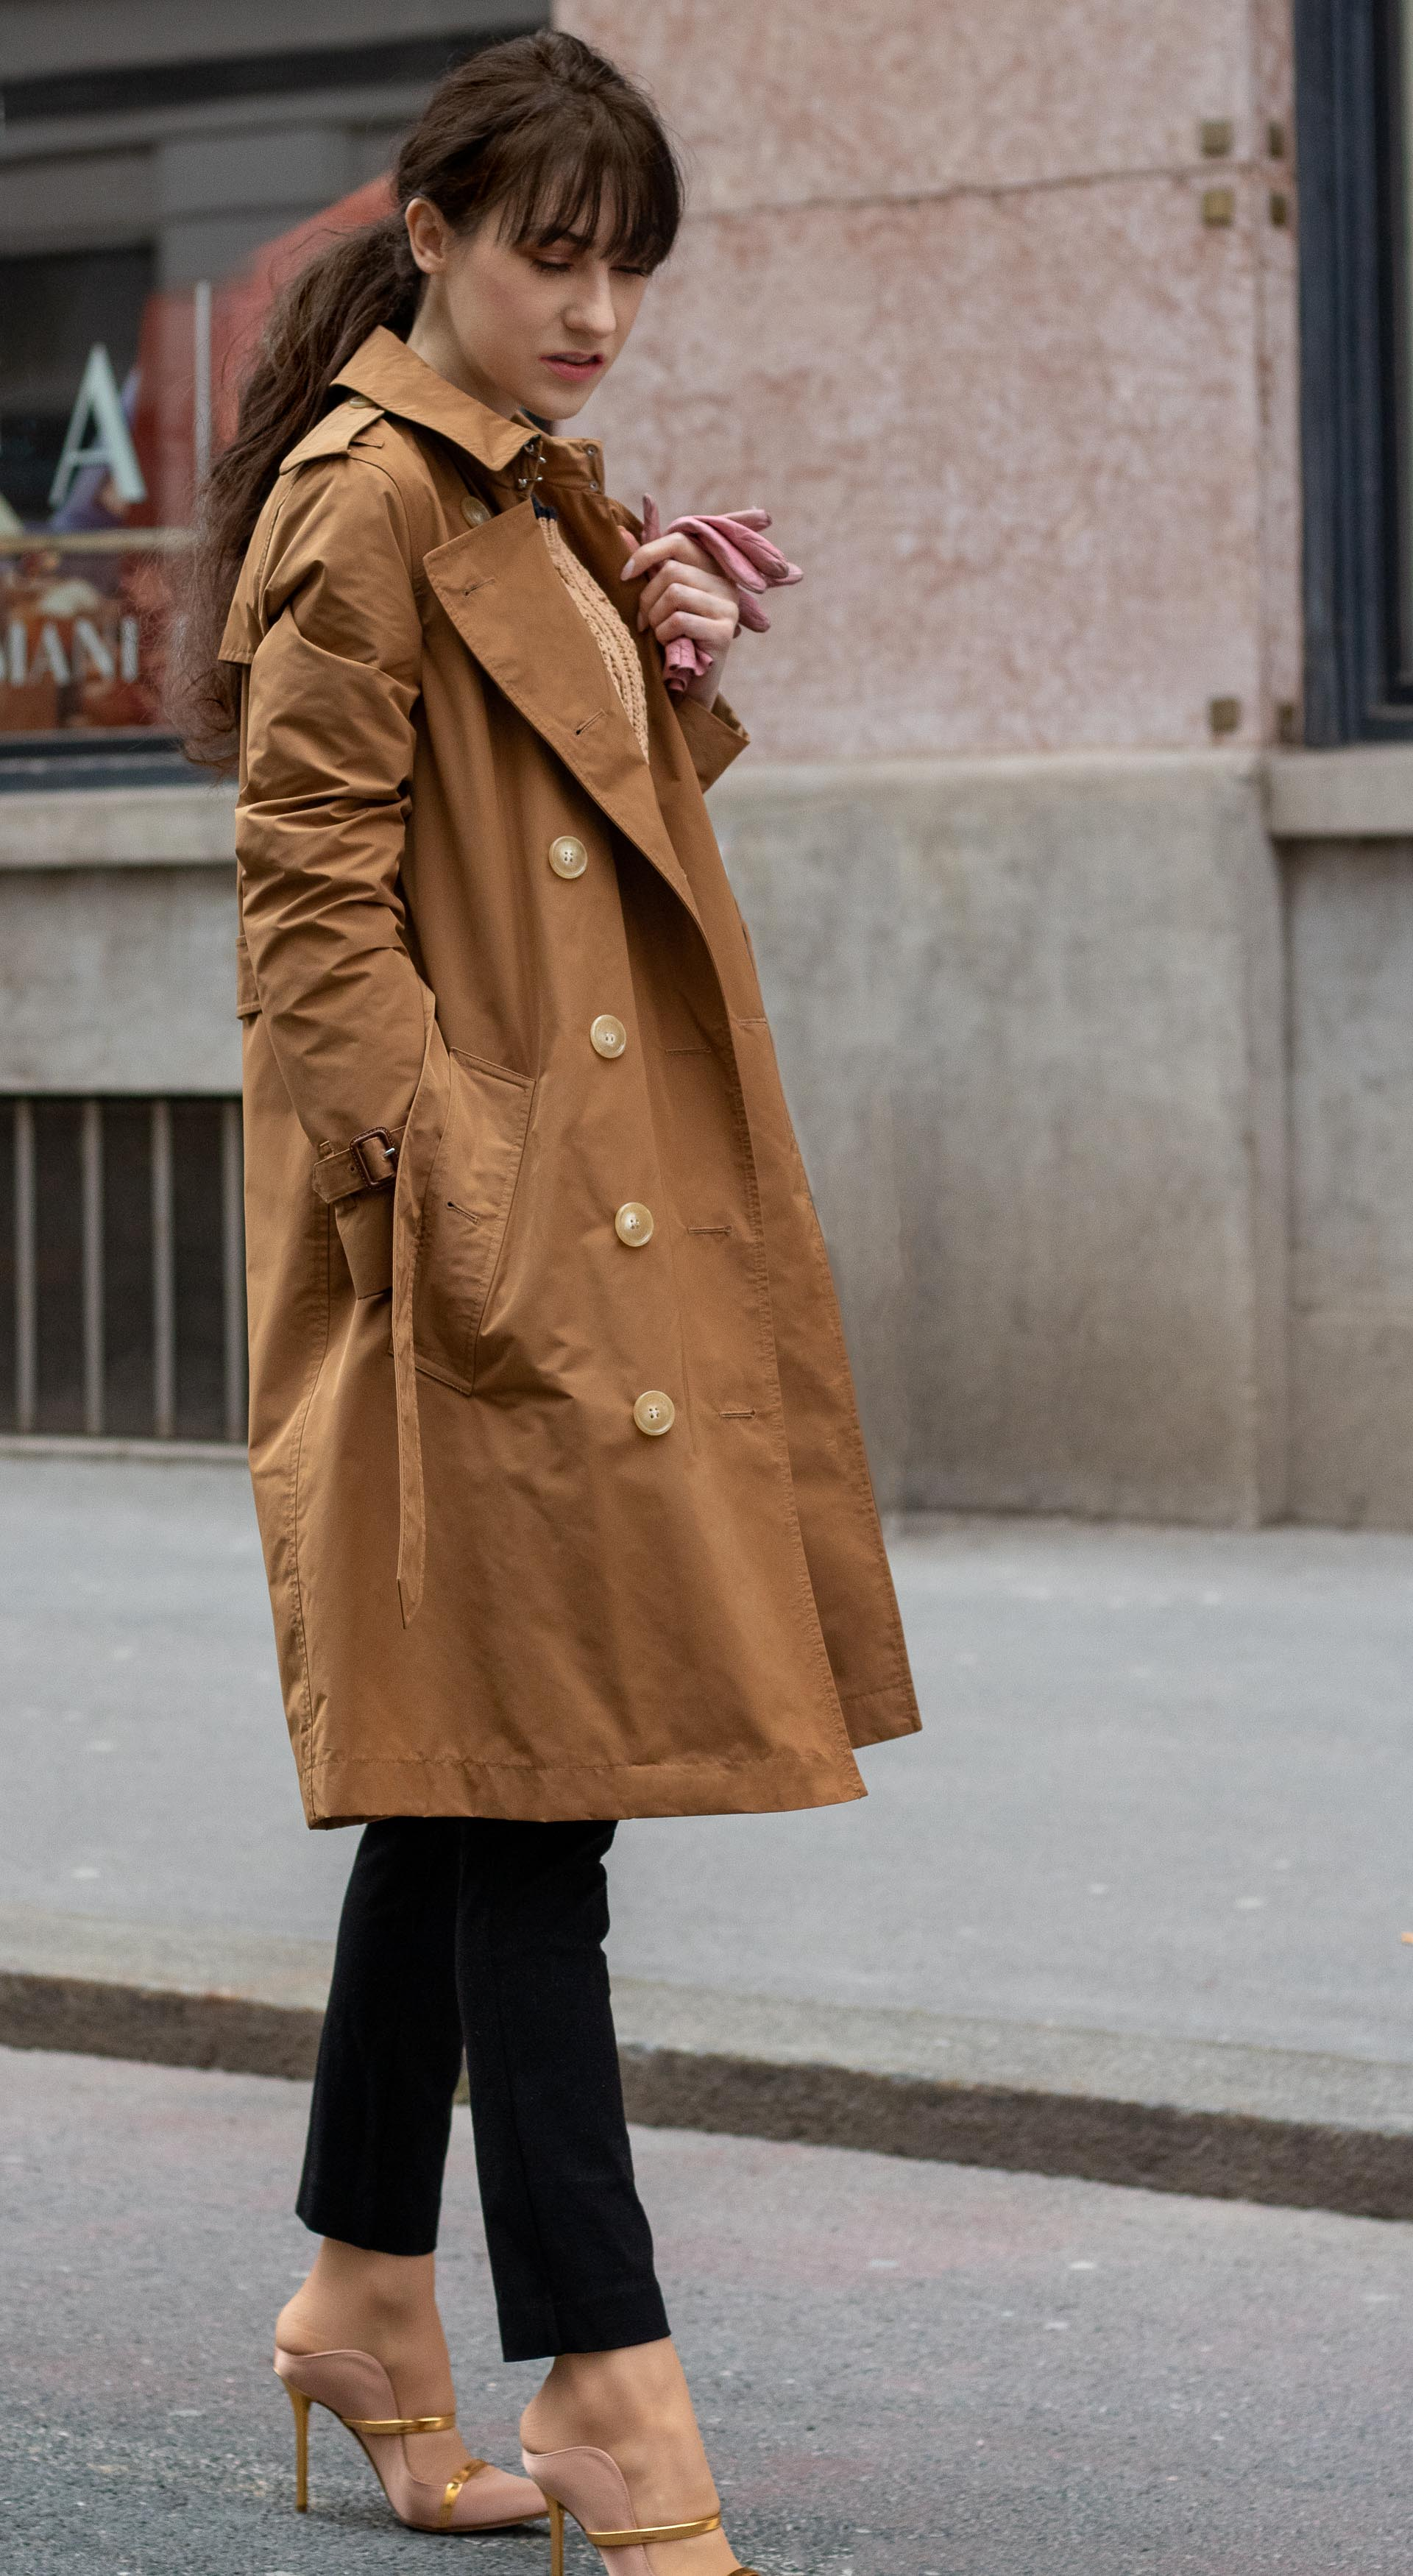 Must follow Slovenian Fashion Blogger Veronika Lipar of Brunette from Wall Street dressed in camel Burberry trench coat Mango cable knit sweater black slacks blush Malone Souliers mules low ponytail bangs going to the office